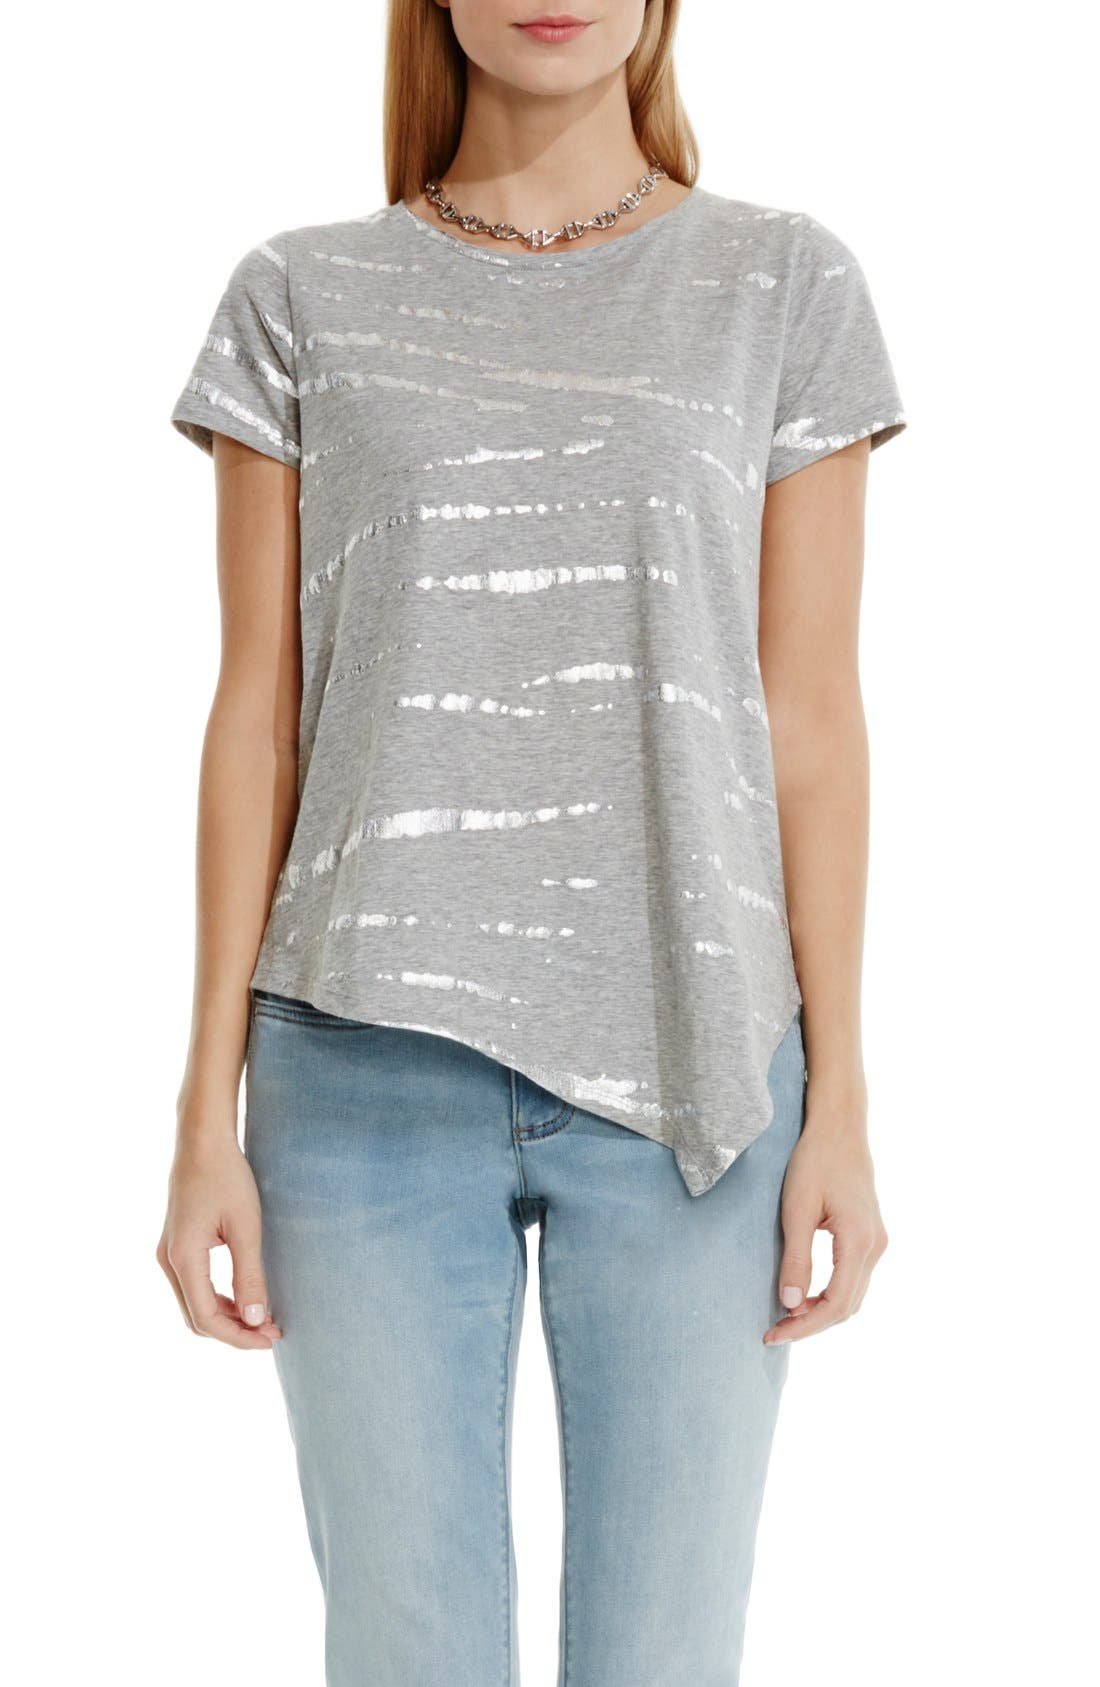 Alternate Image 1 Selected - Two by Vince Camuto Foiled Tie Dye Tee